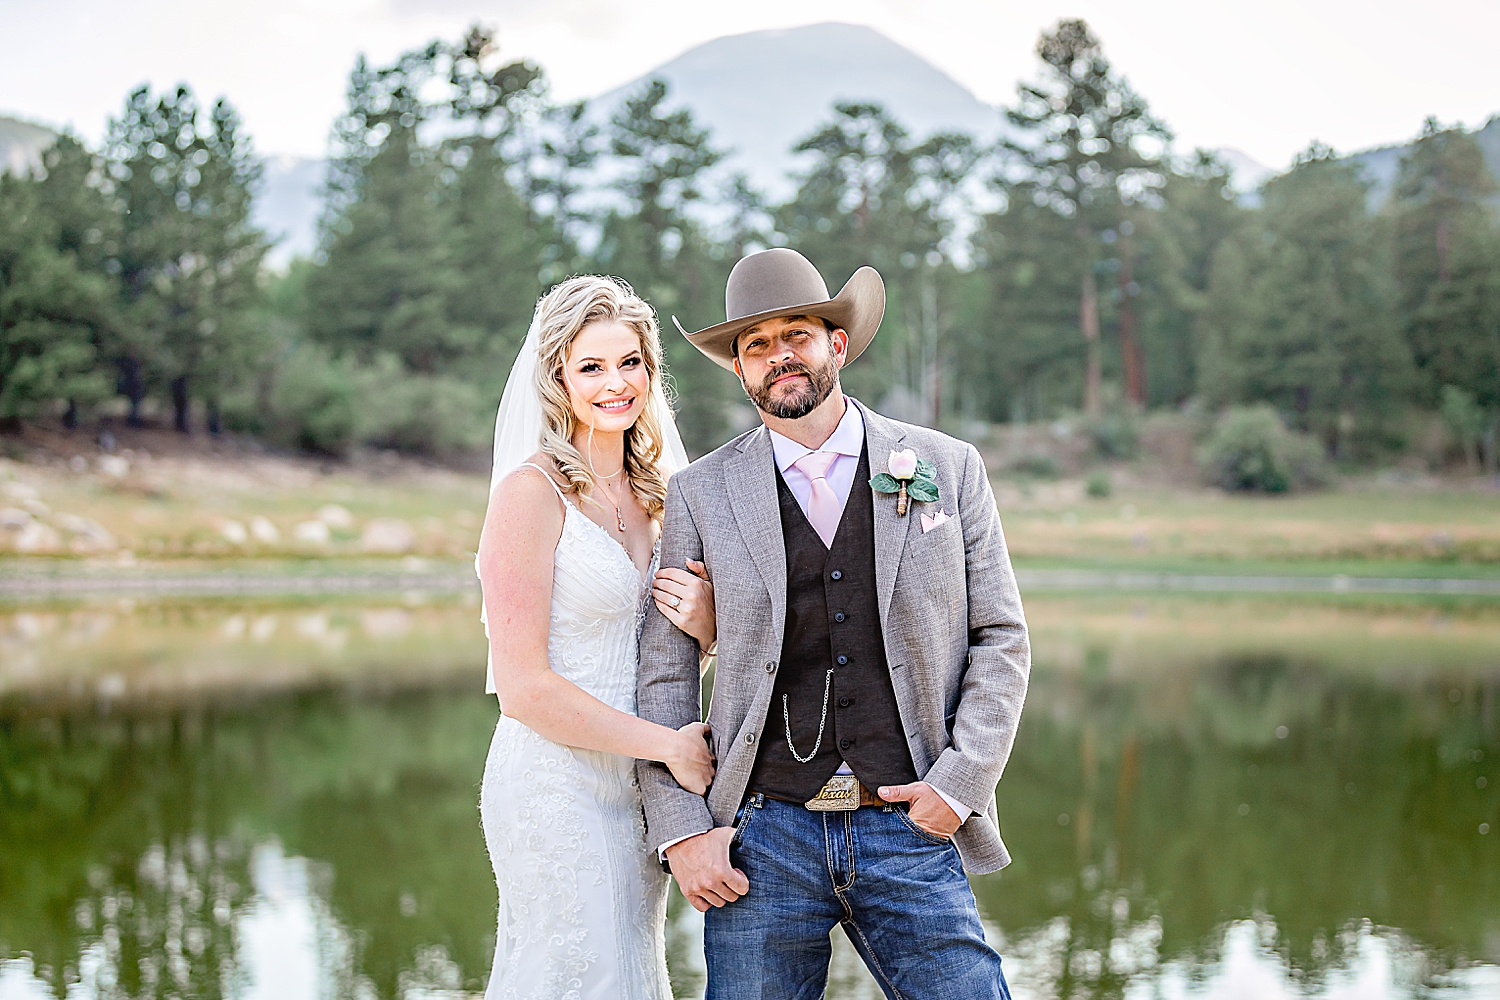 Carly-Barton-Photography-Rocky-Mountain-National-Park-Estes-Park-Wedding-Elopement_0018.jpg